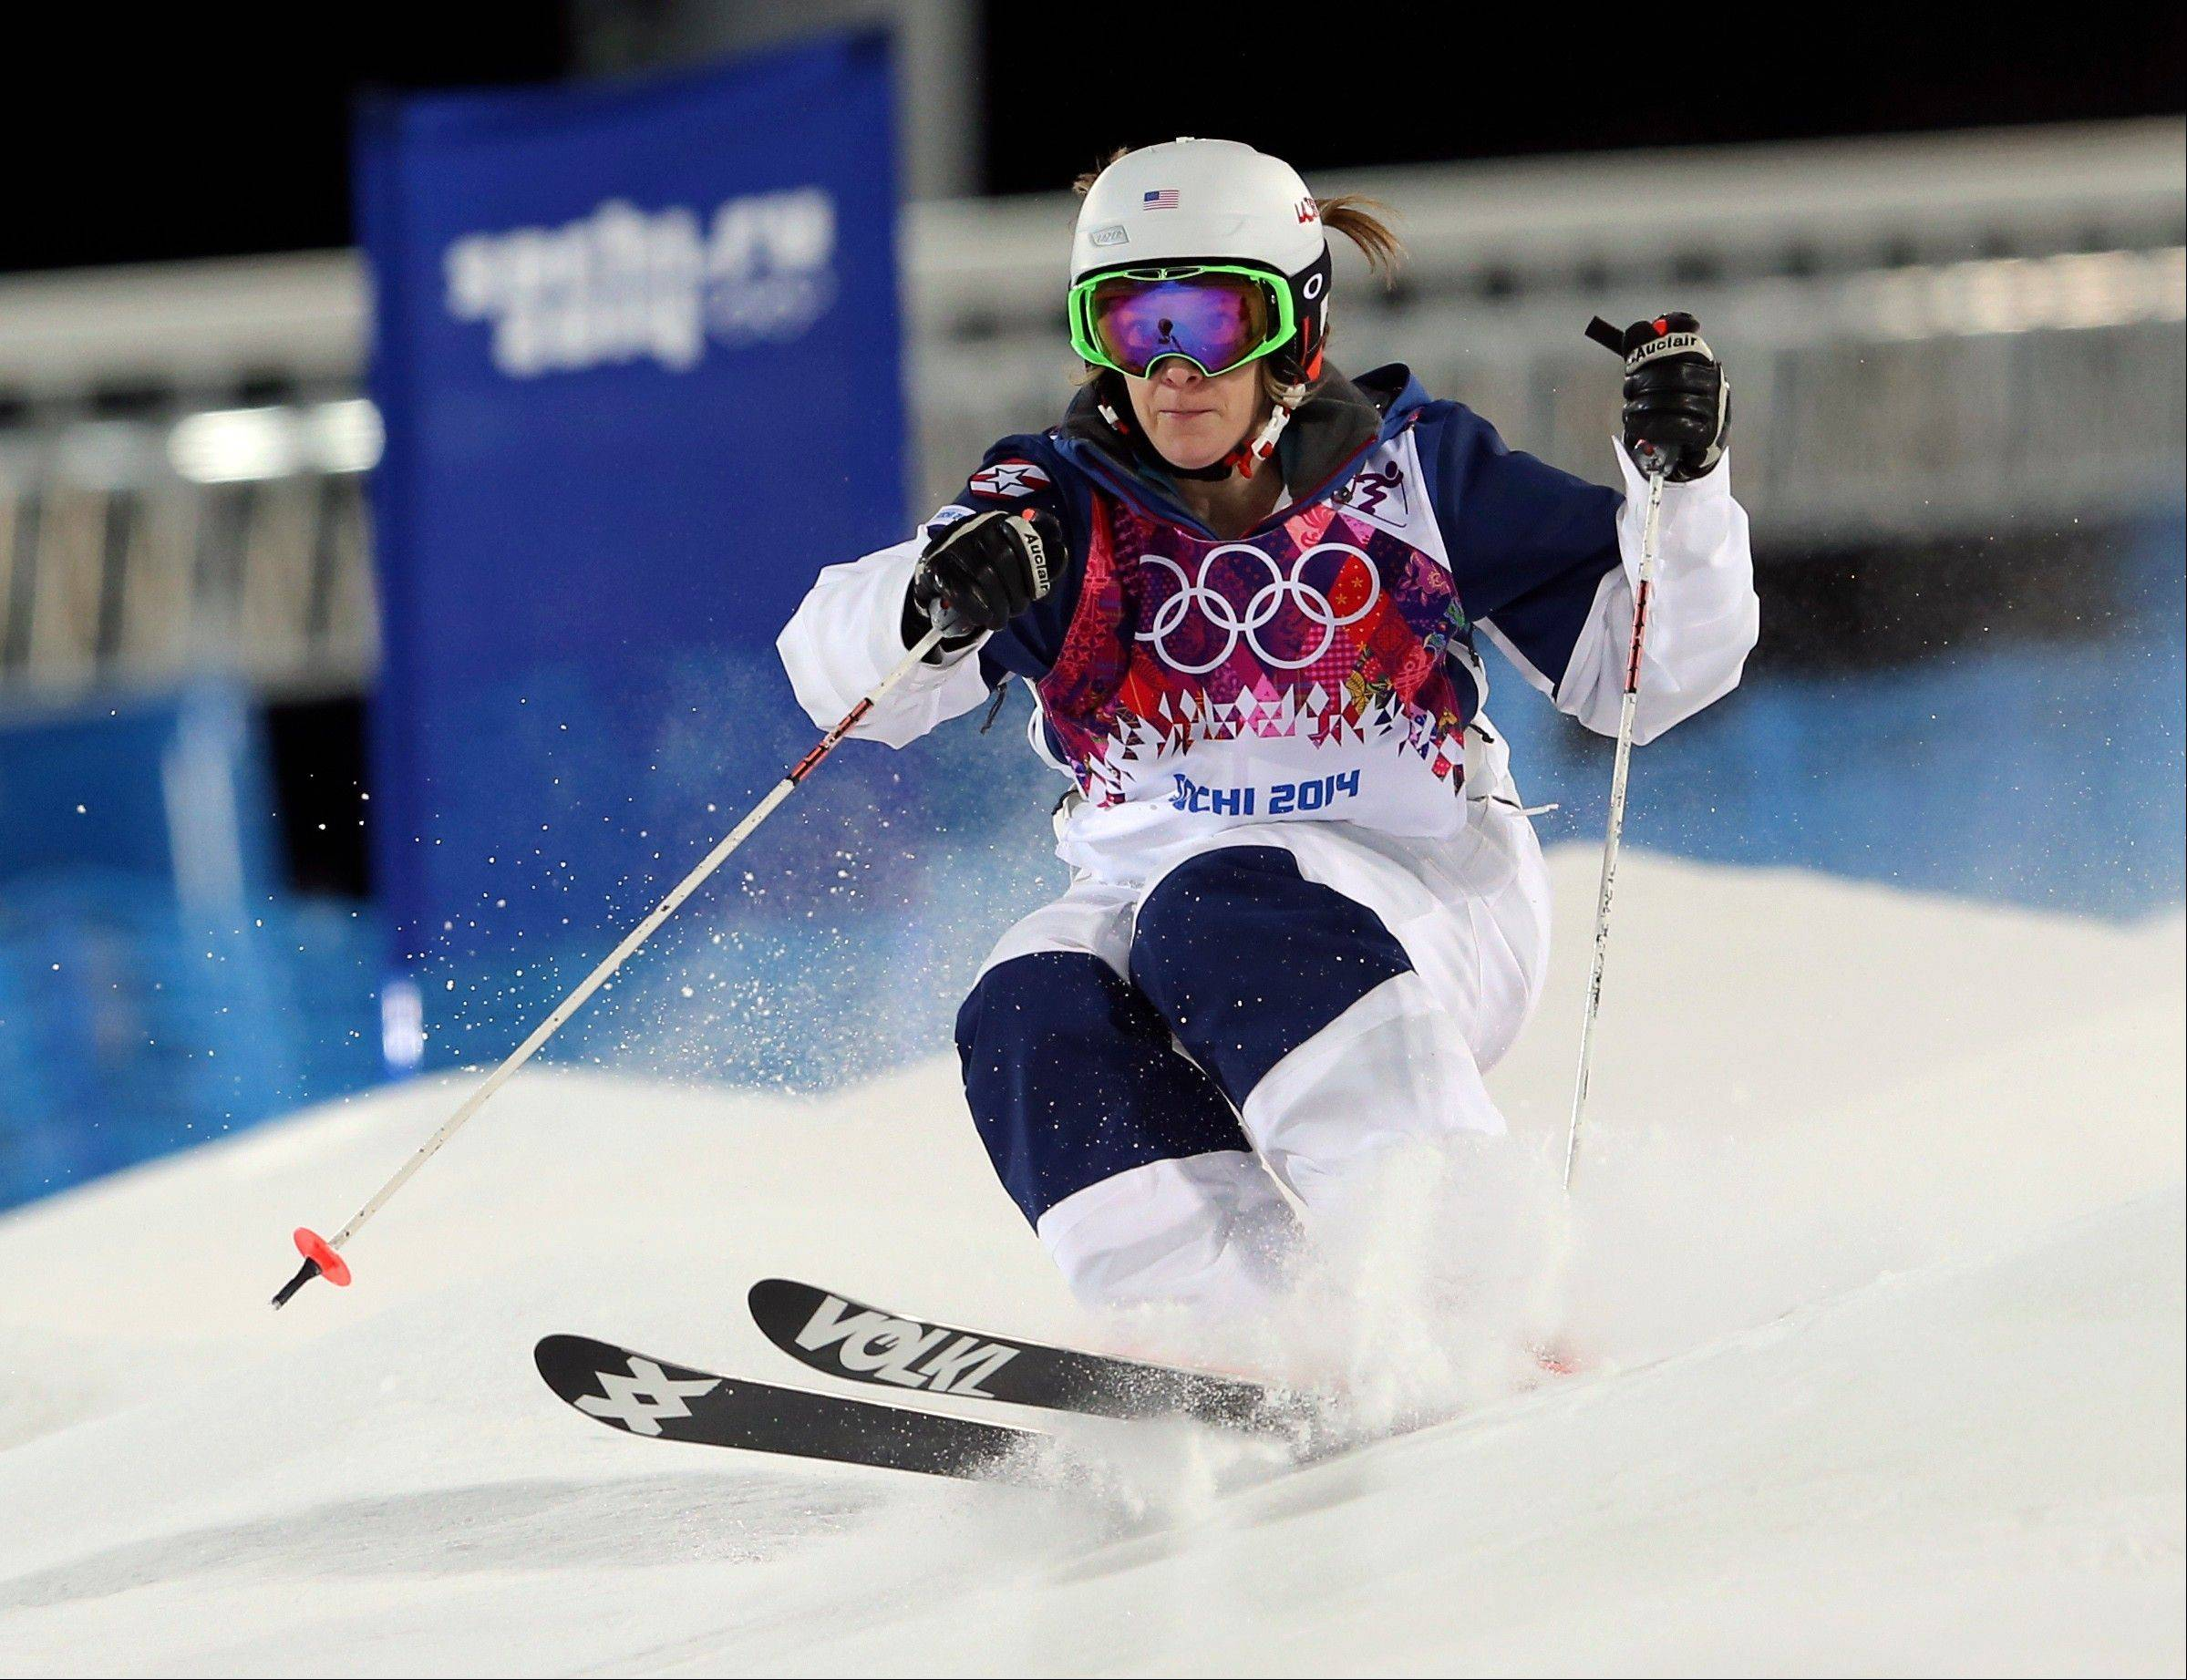 United States' Hannah Kearney competes in the women's moguls final 1 at the Rosa Khutor Extreme Park, at the 2014 Winter Olympics, Saturday, Feb. 8, 2014, in Krasnaya Polyana, Russia.